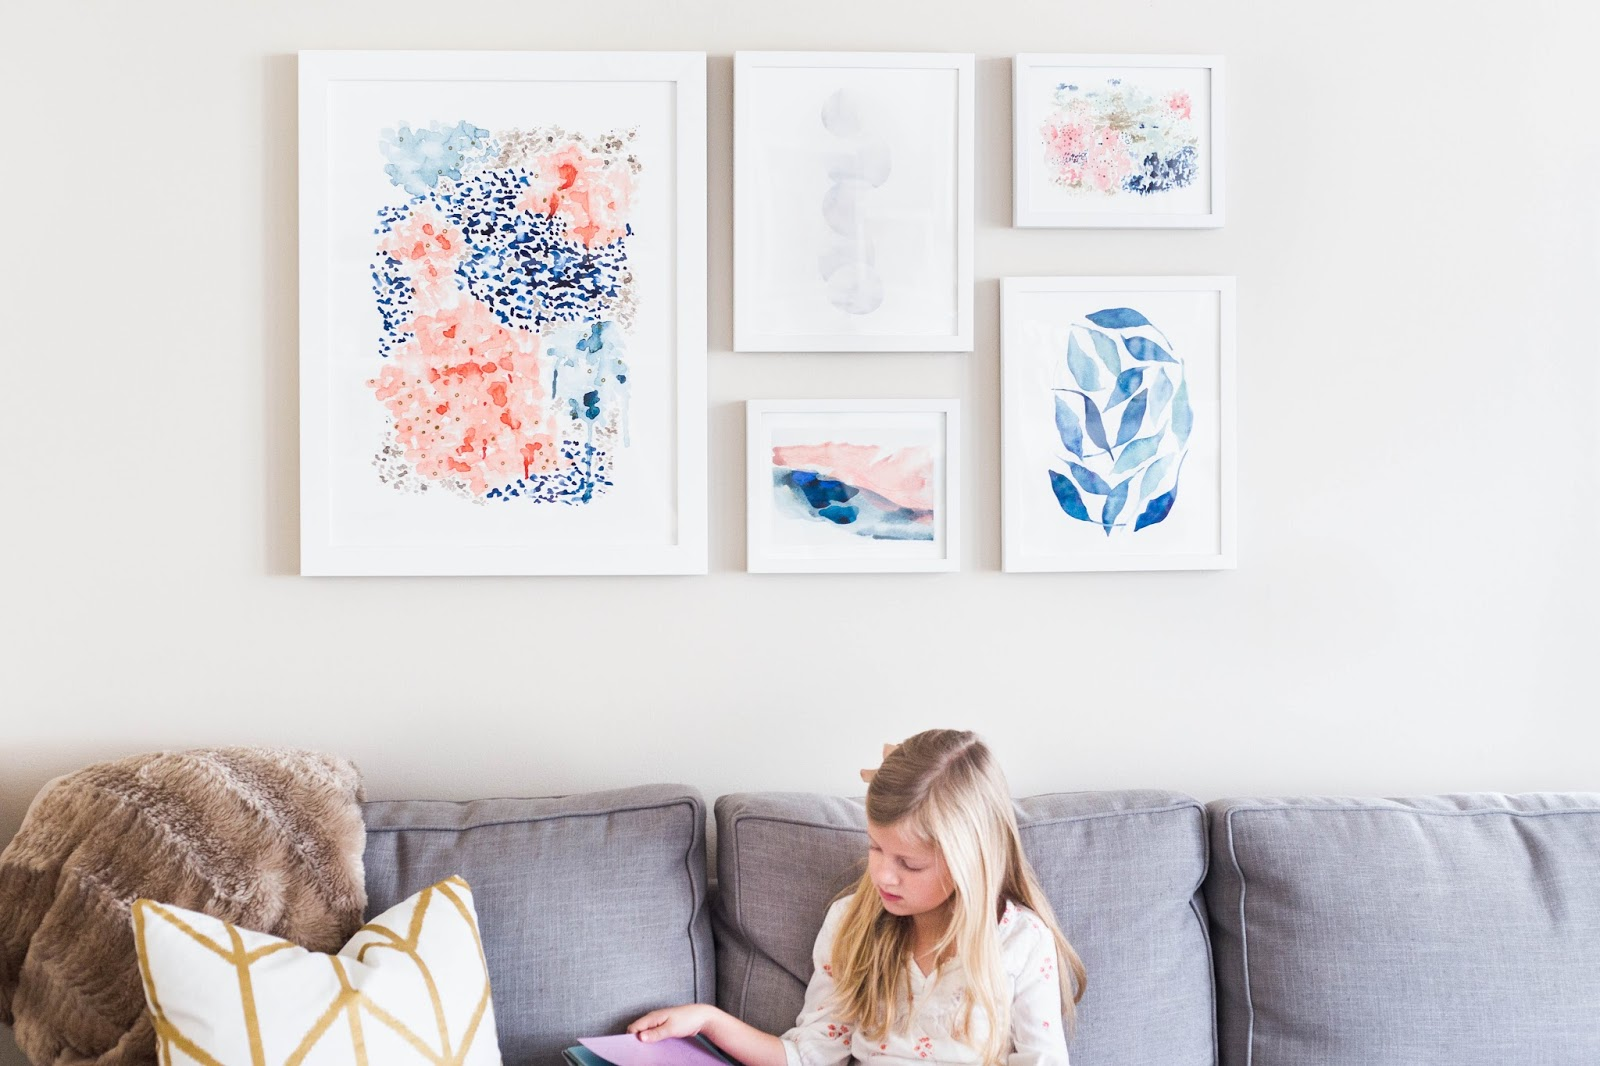 do it yourself divas: How to Display Art Work - With Minted ...